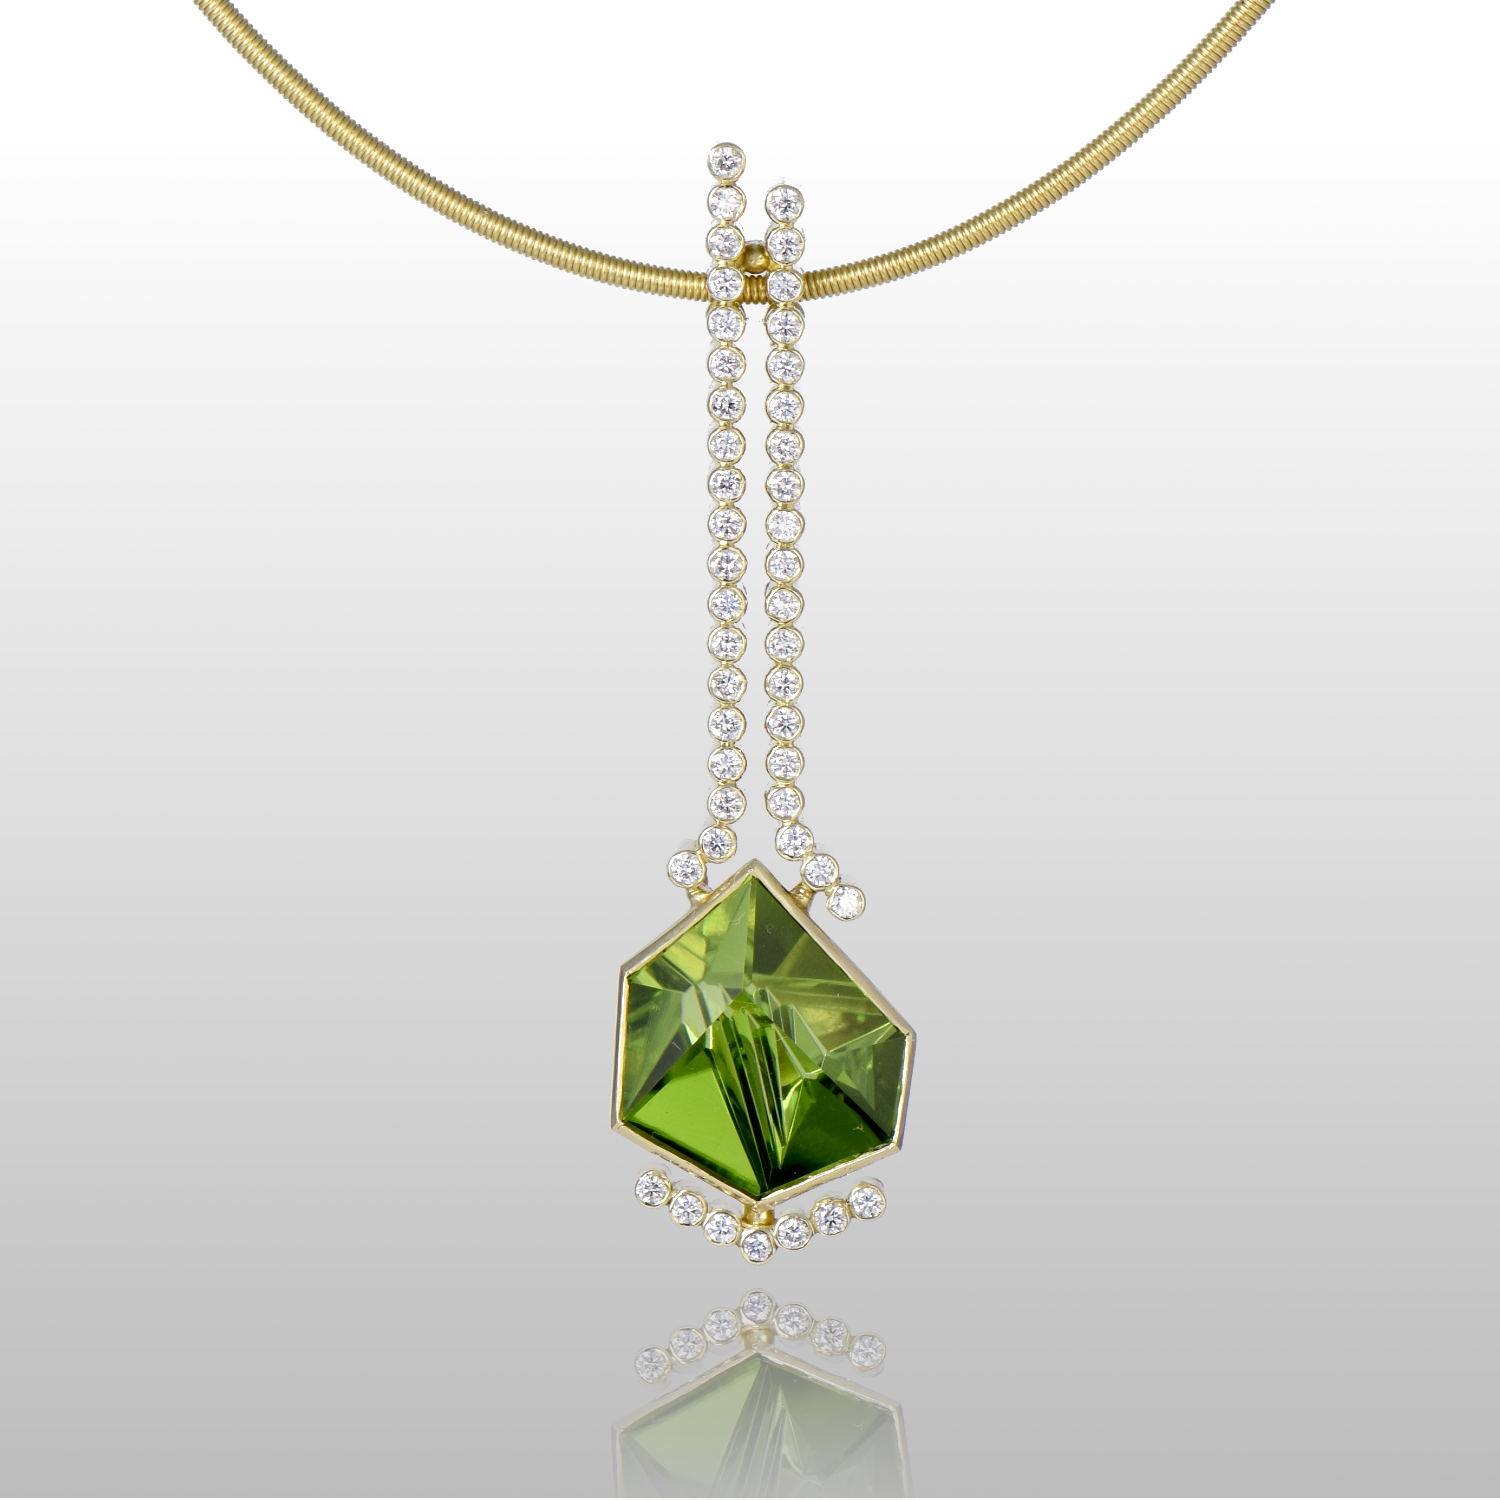 Contemporary Necklace in 18k Gold with a Peridot (5.33cts), cut by Tom Munsteiner and 45 diamonds by Pratima Design Fine Art Jewelry Maui